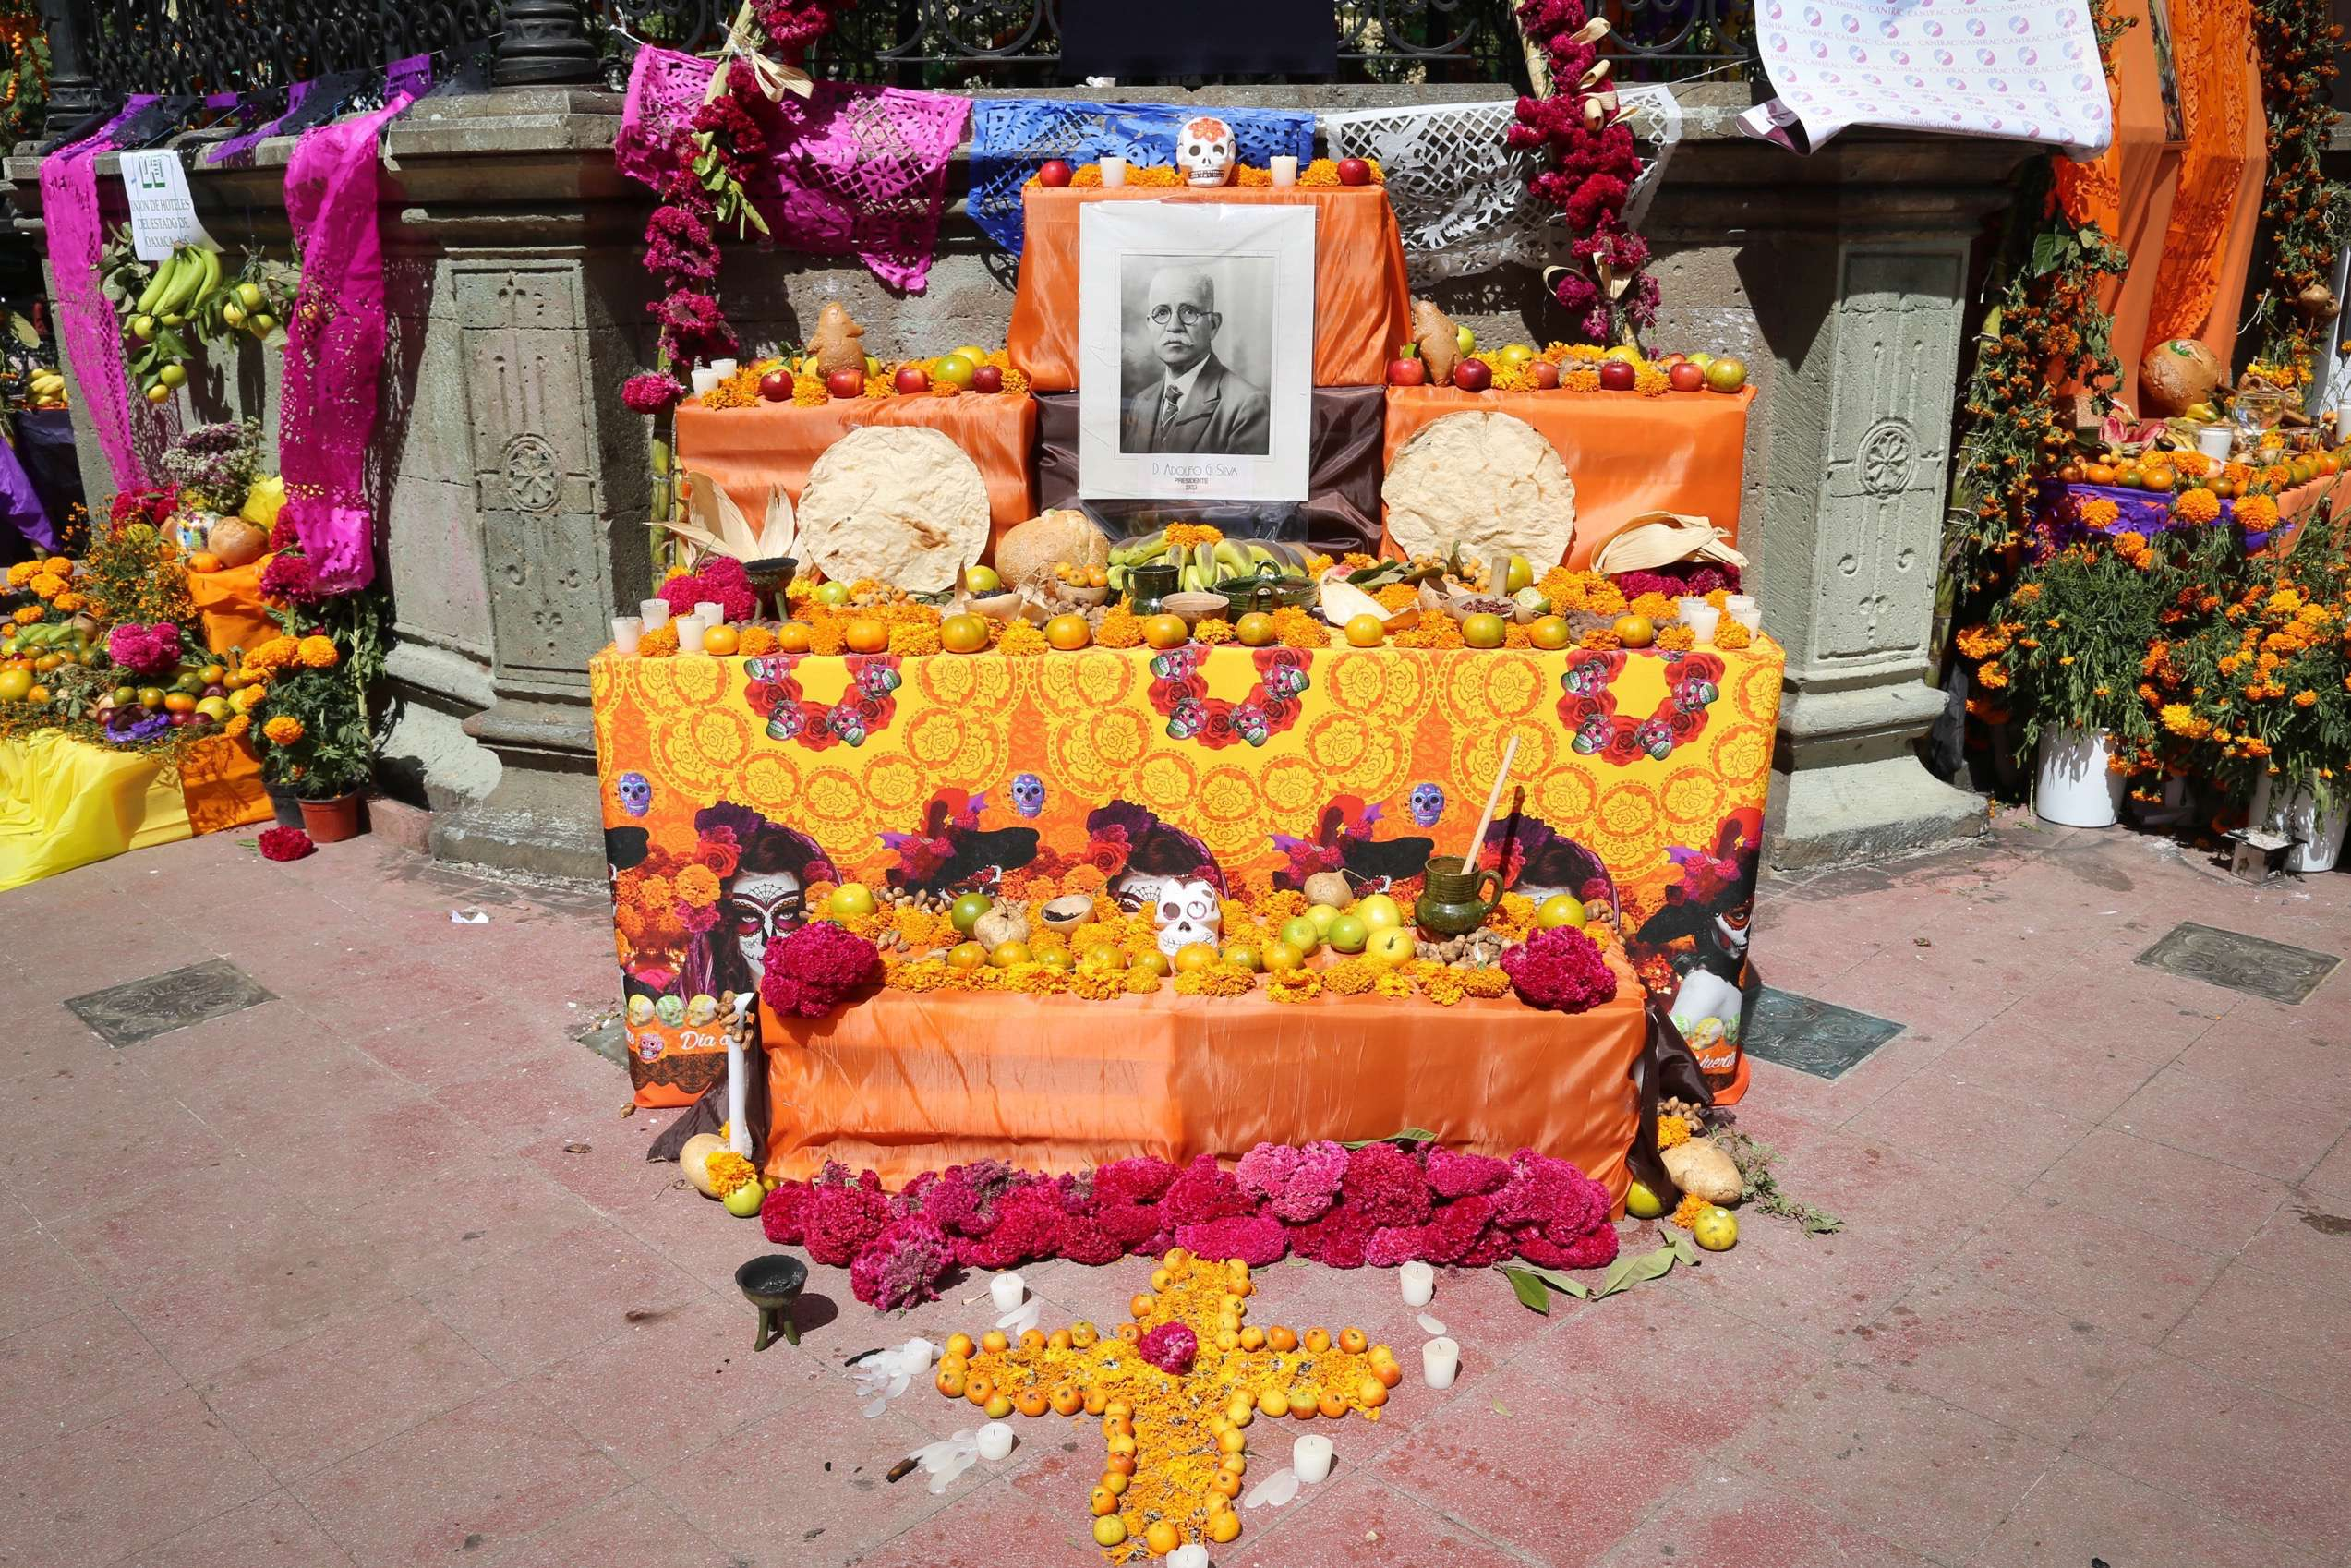 Altars reflect the region of Mexico and the life of the person honored, but most have a portrait of the deceased.